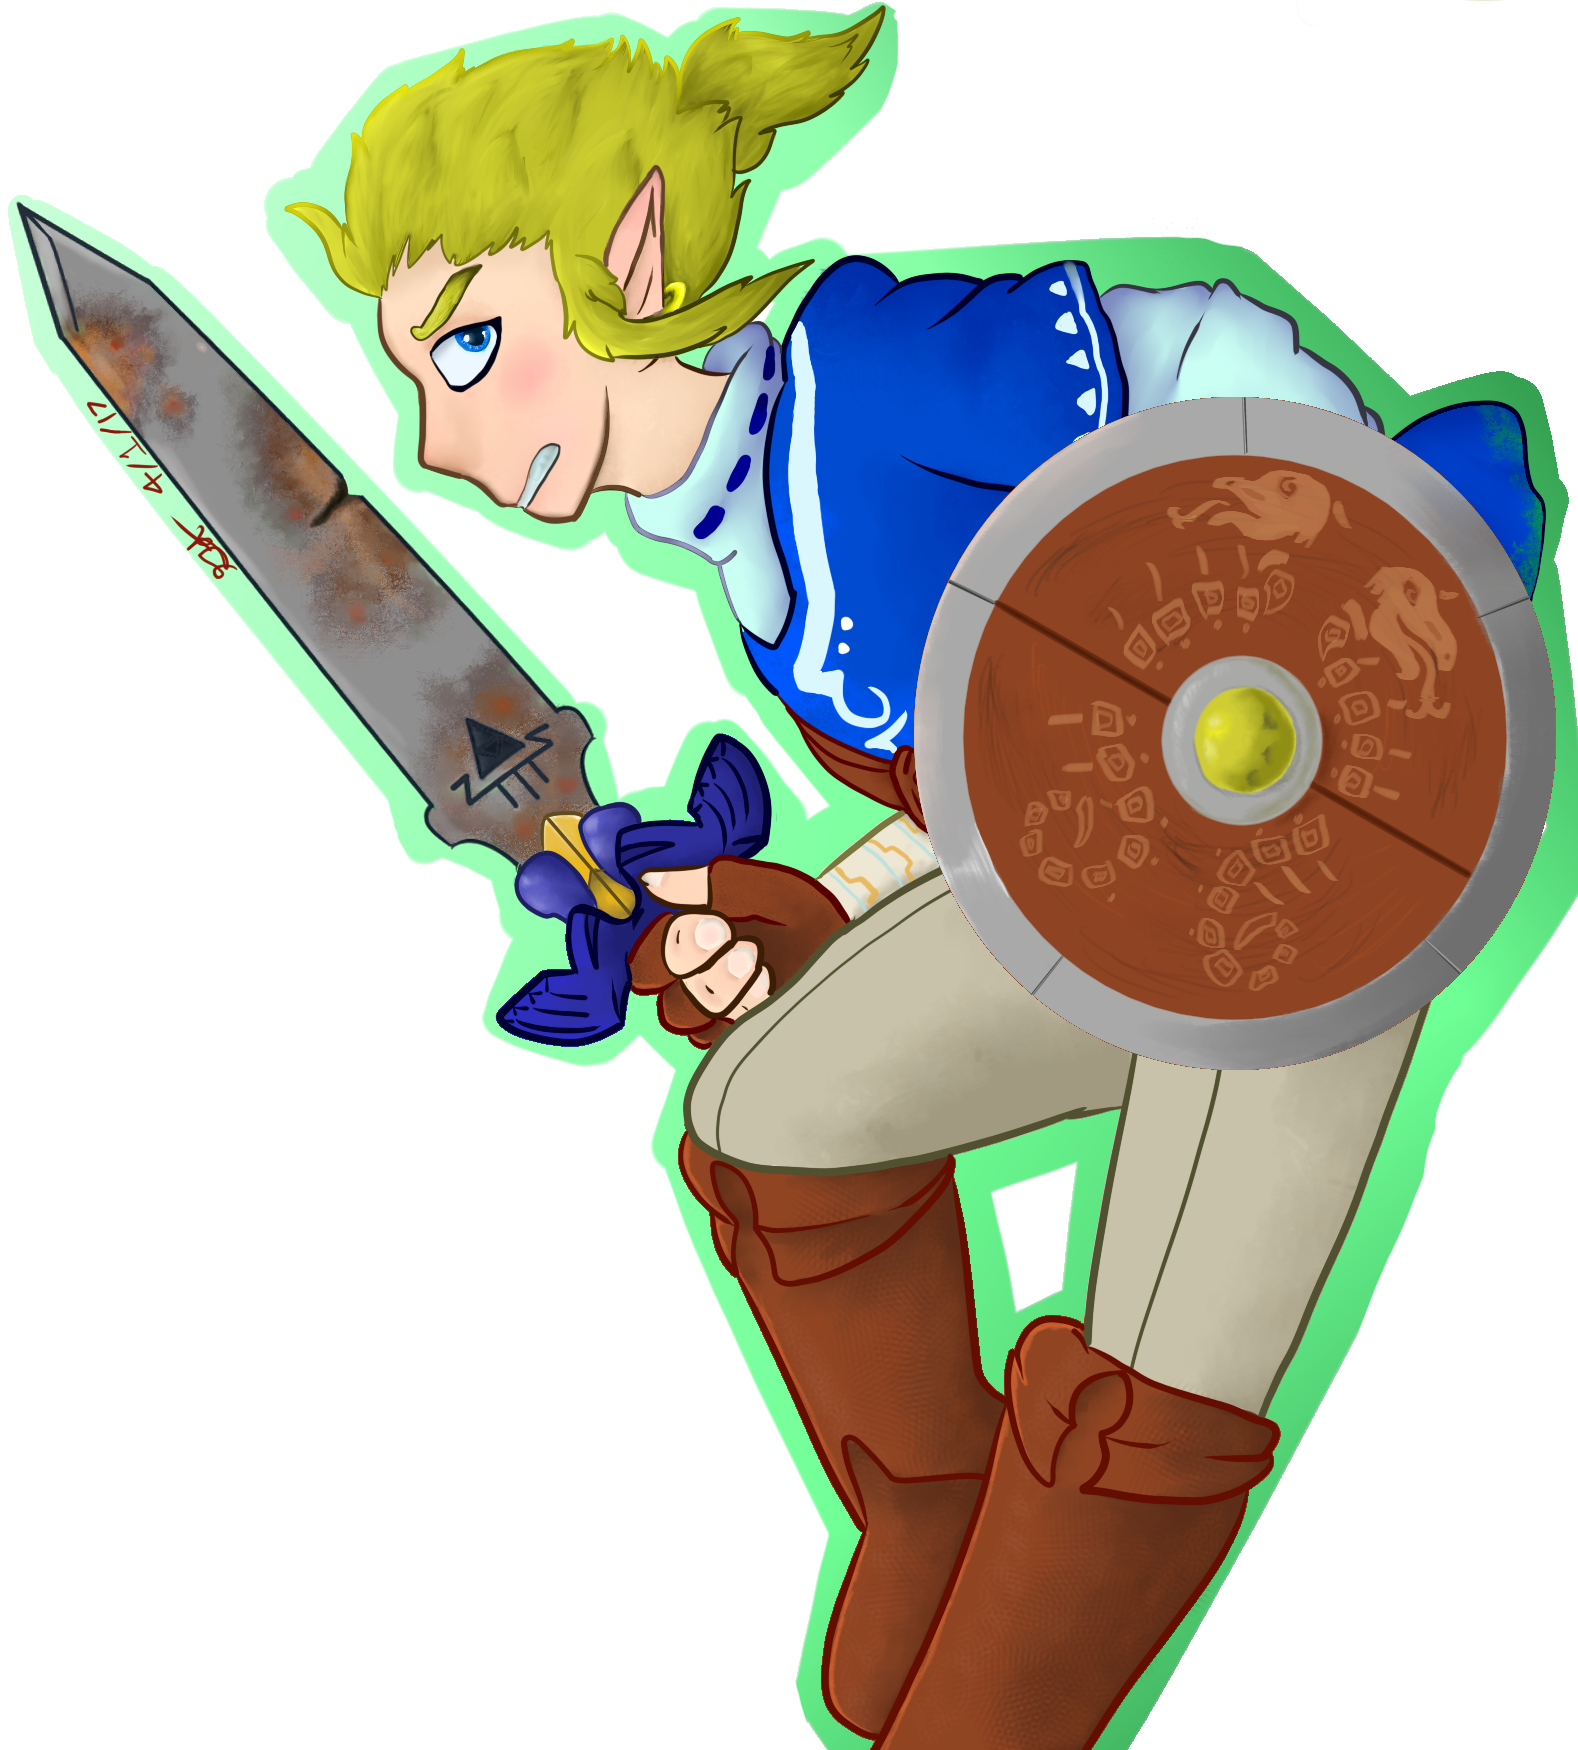 Link needs a new sword.